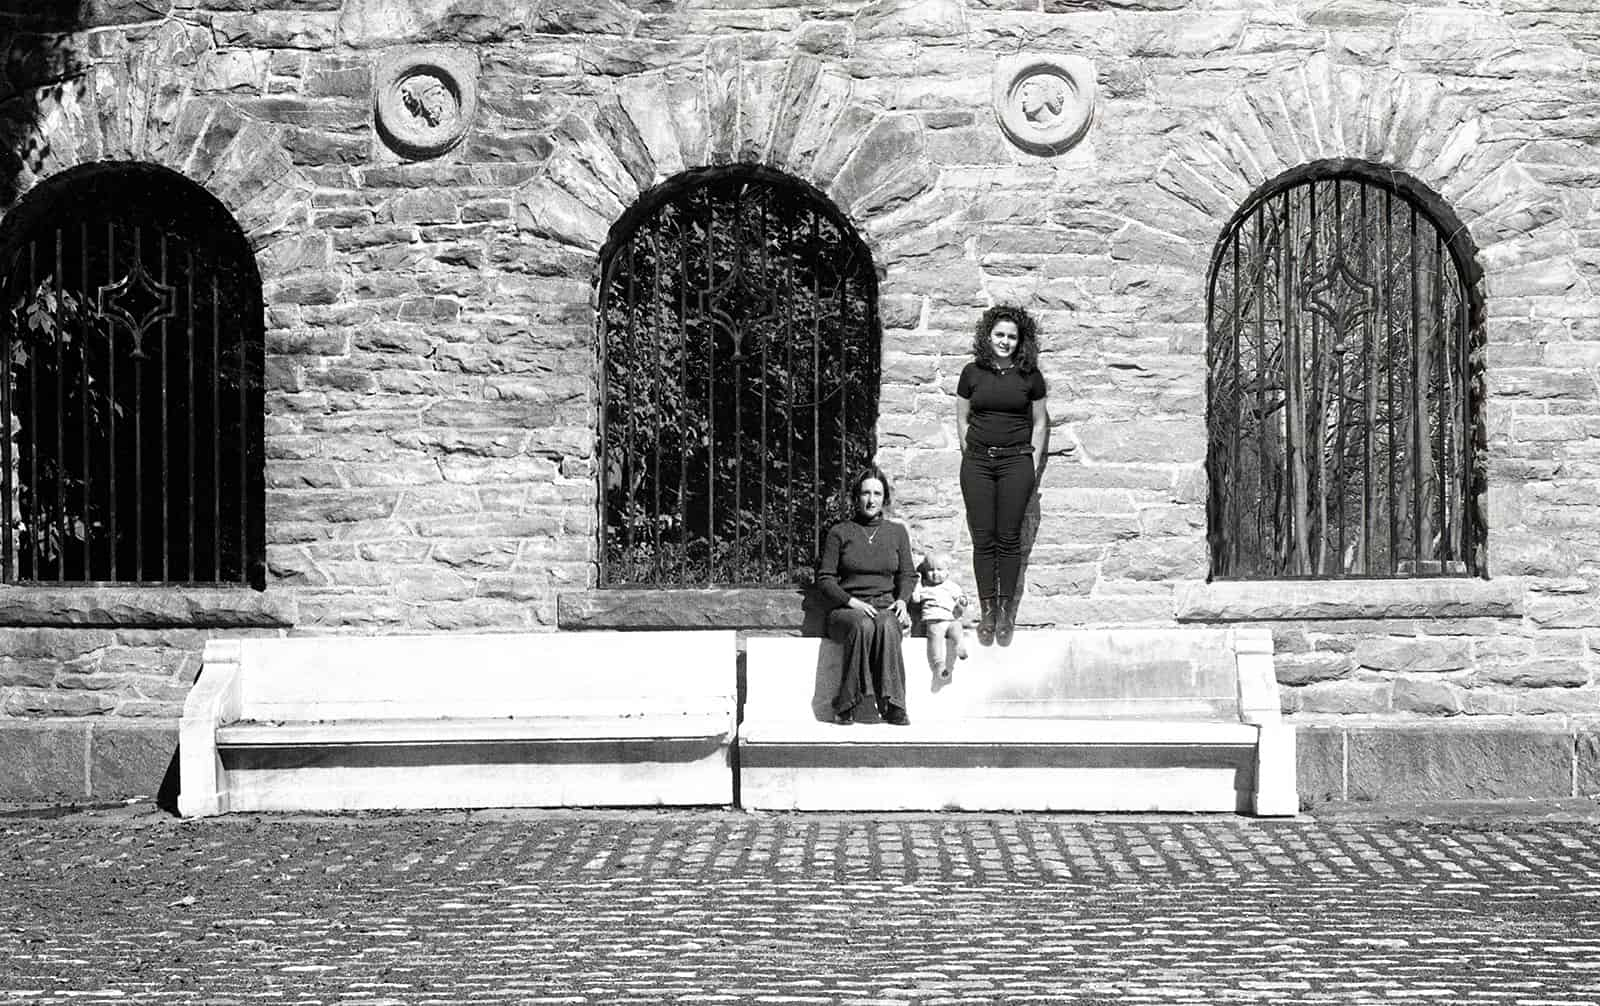 black and white photograph of two women and a baby in front of a brick wall.